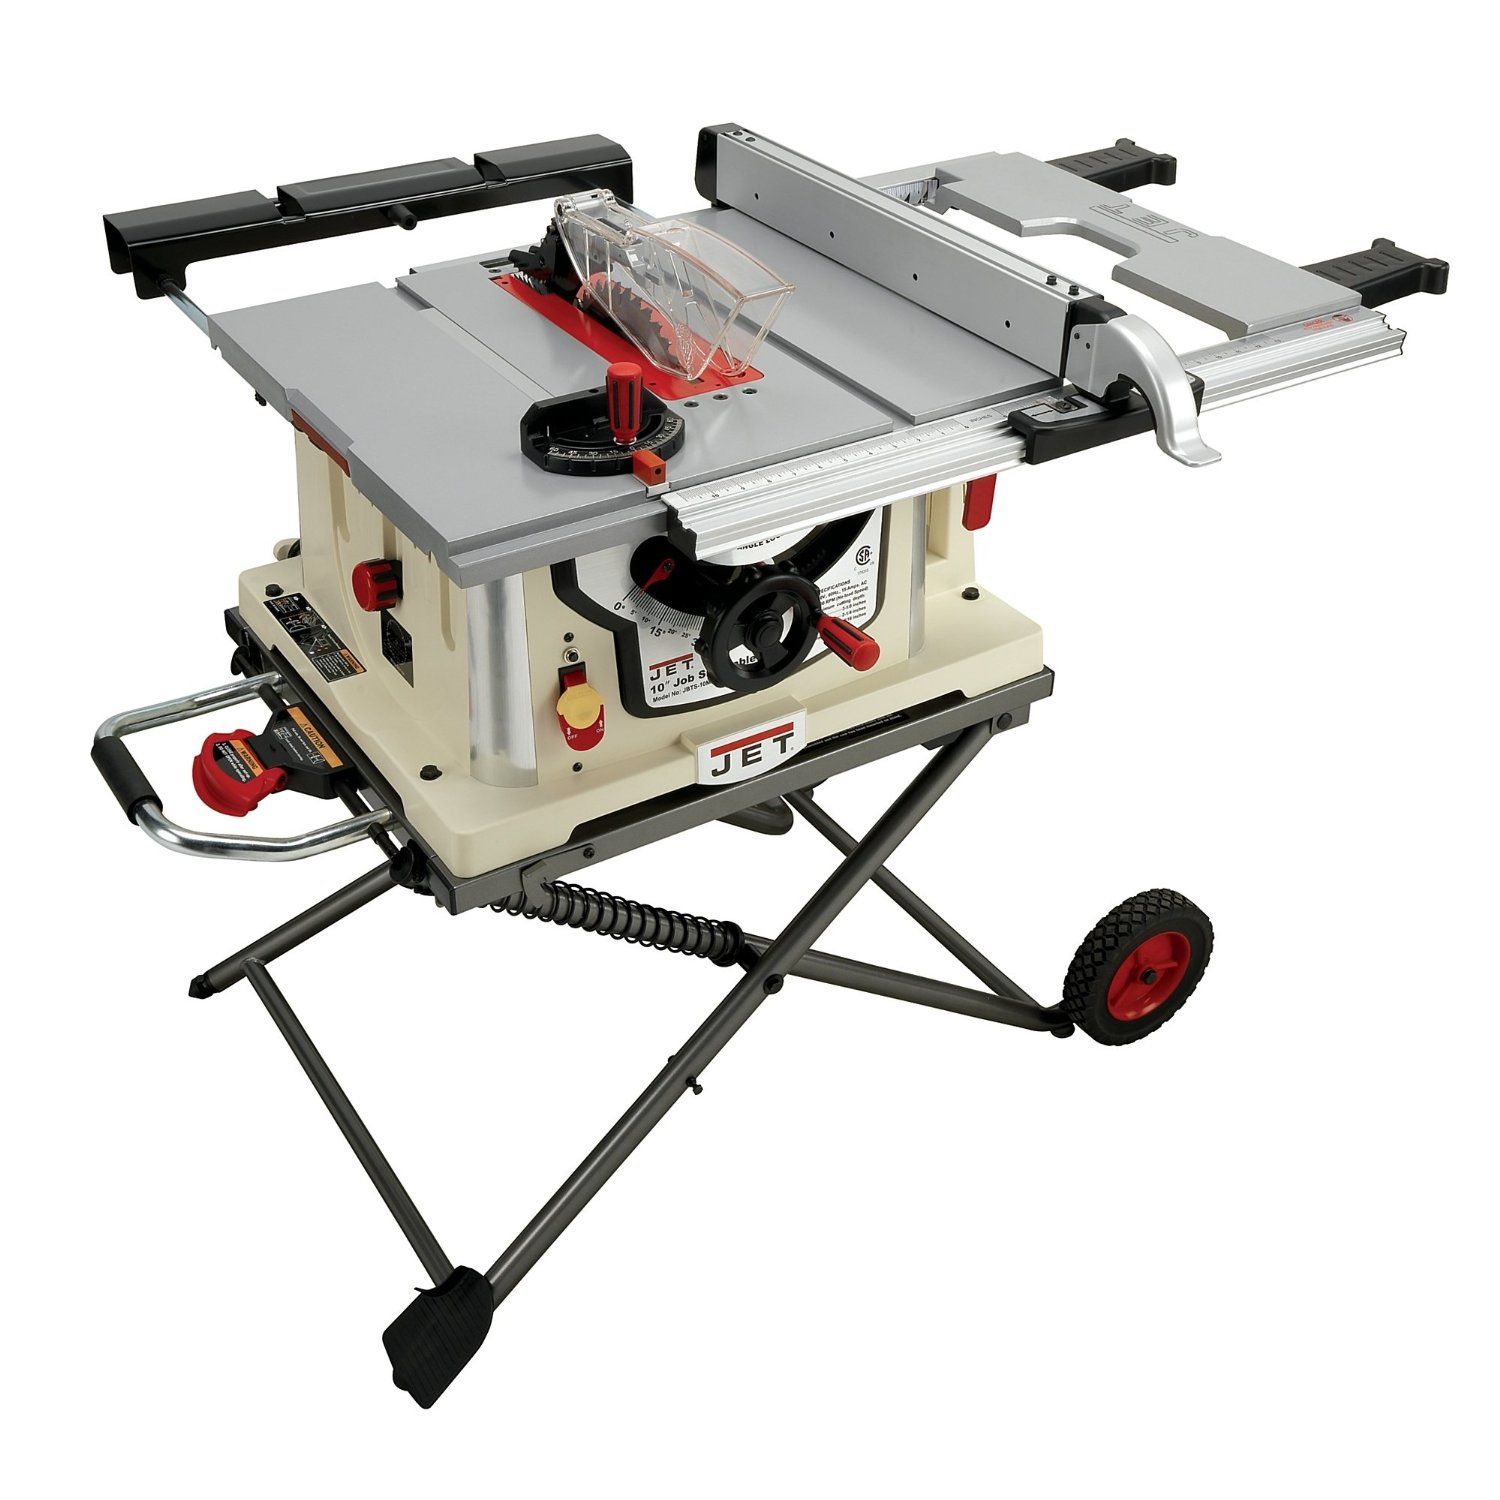 Jet jbts 10mjs review table saw central for 10 inch table saw blade reviews